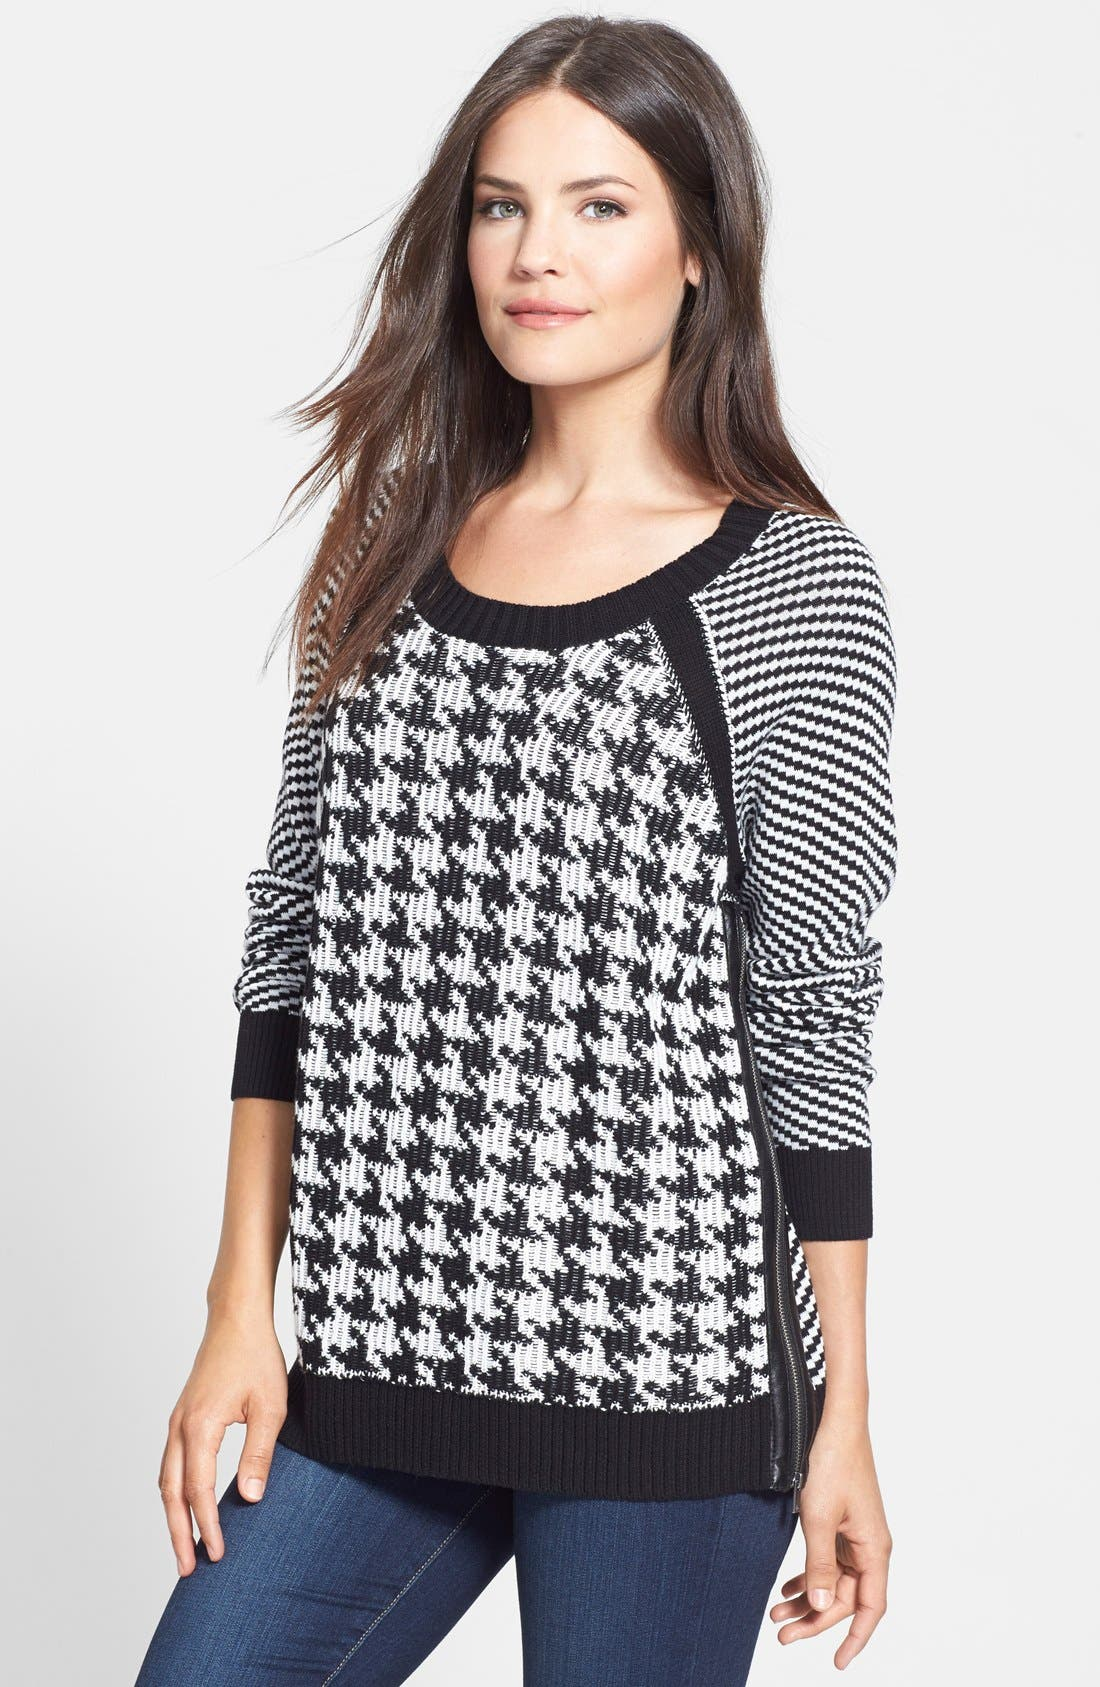 Main Image - Two by Vince Camuto Houndstooth Front Jacquard Sweater